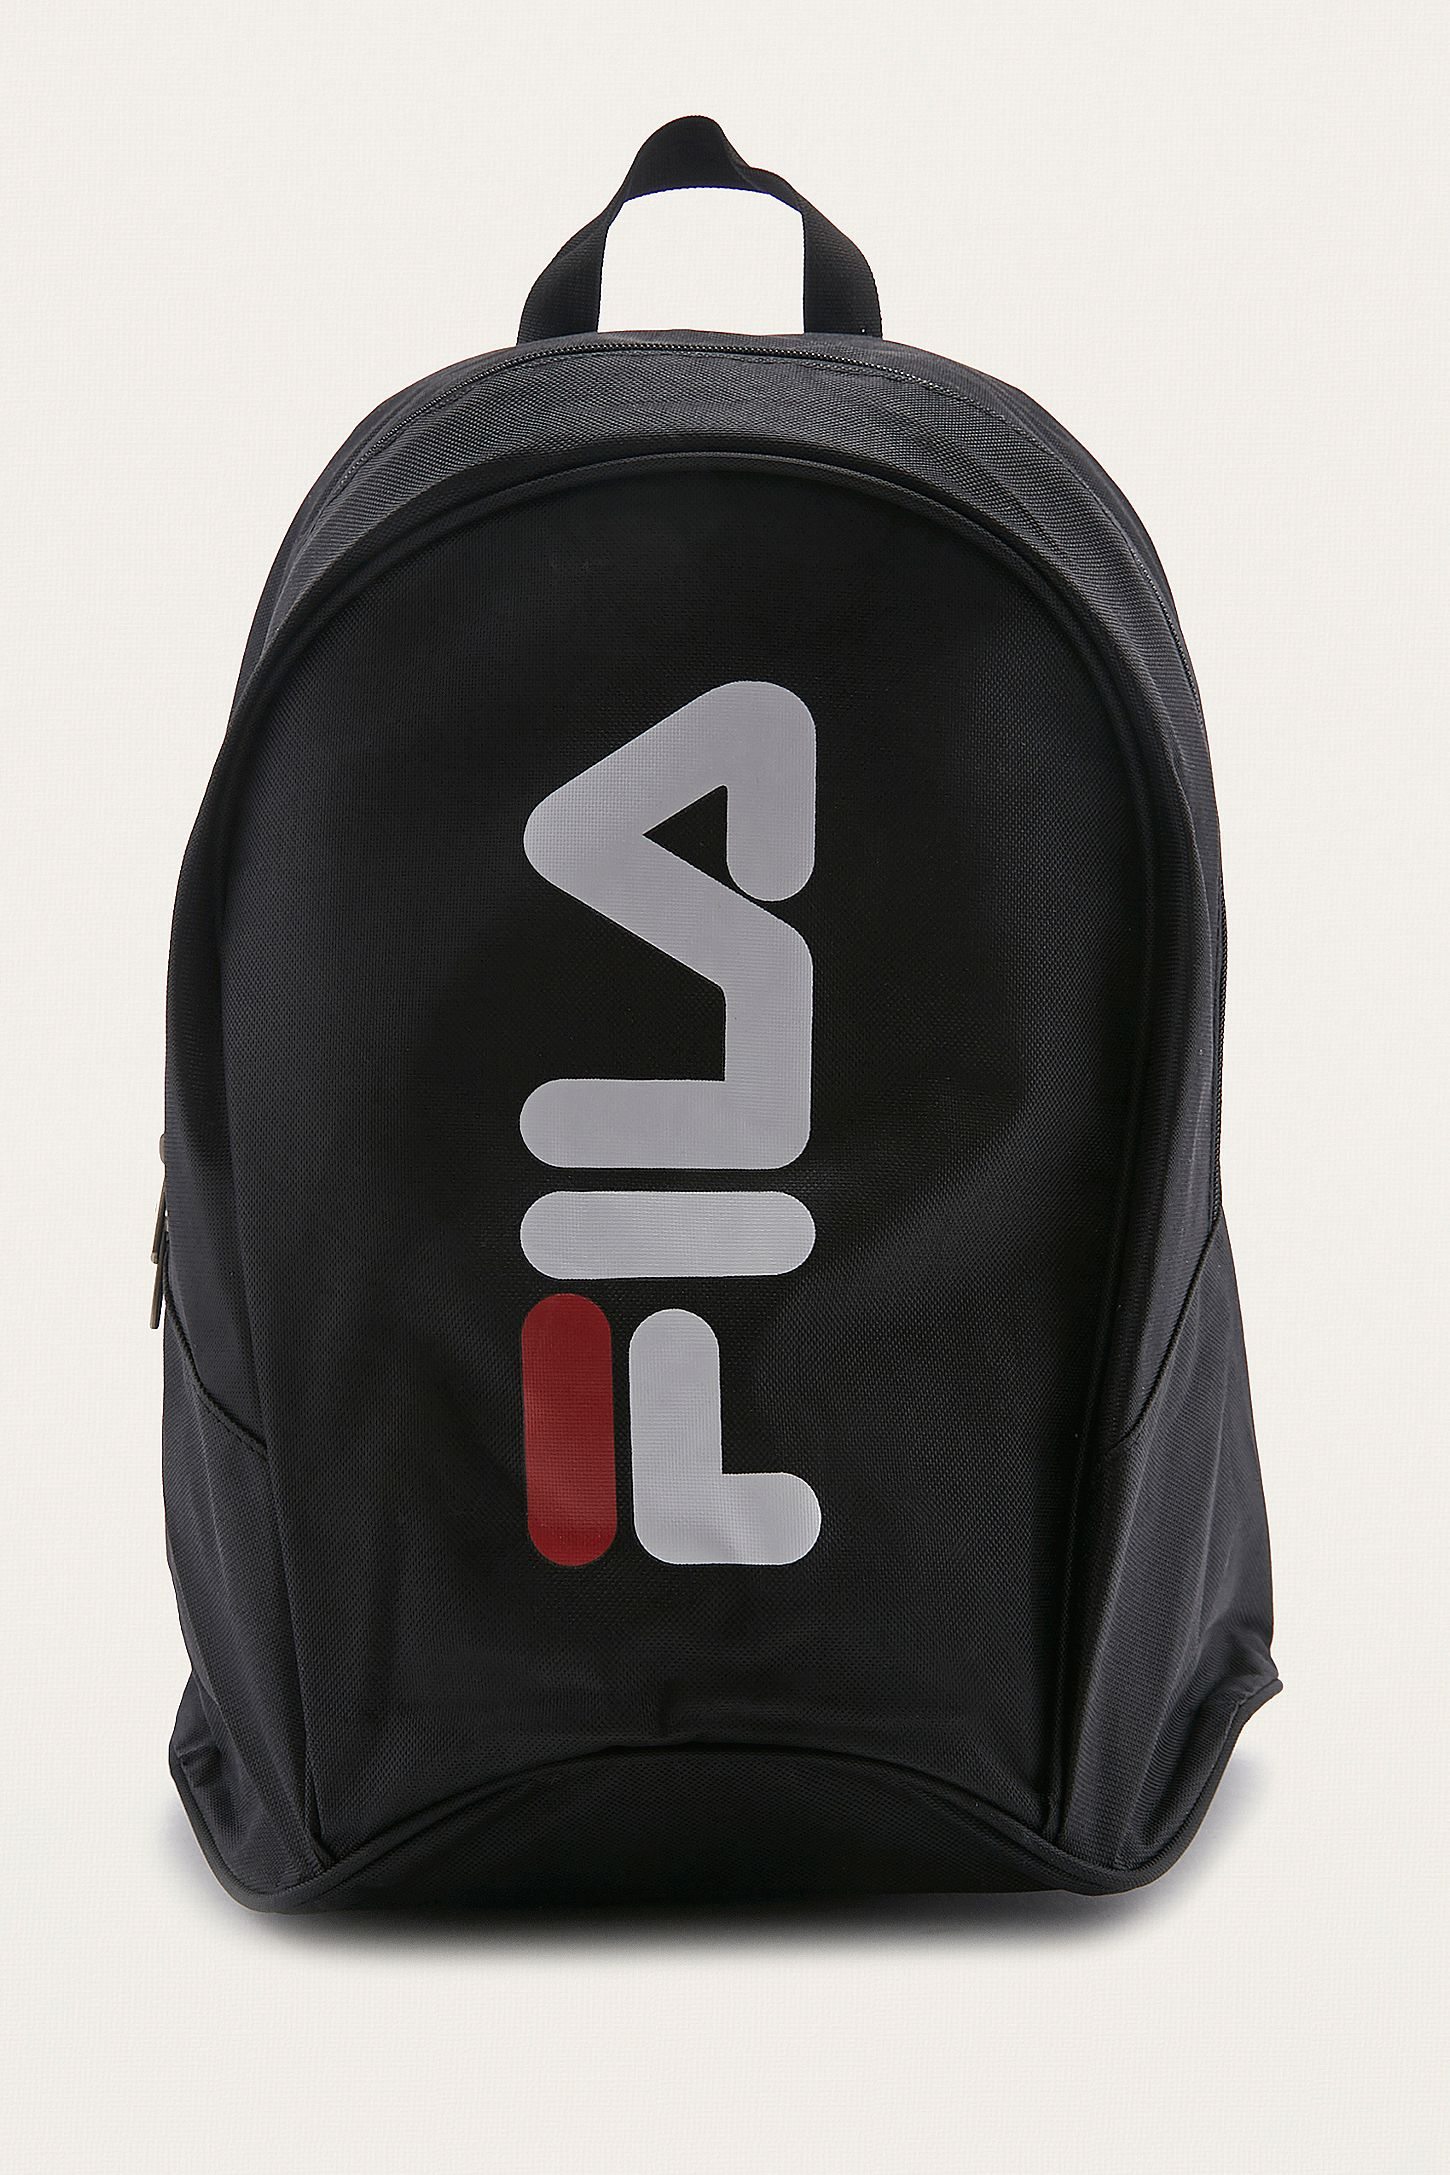 FILA Bradley Black Backpack